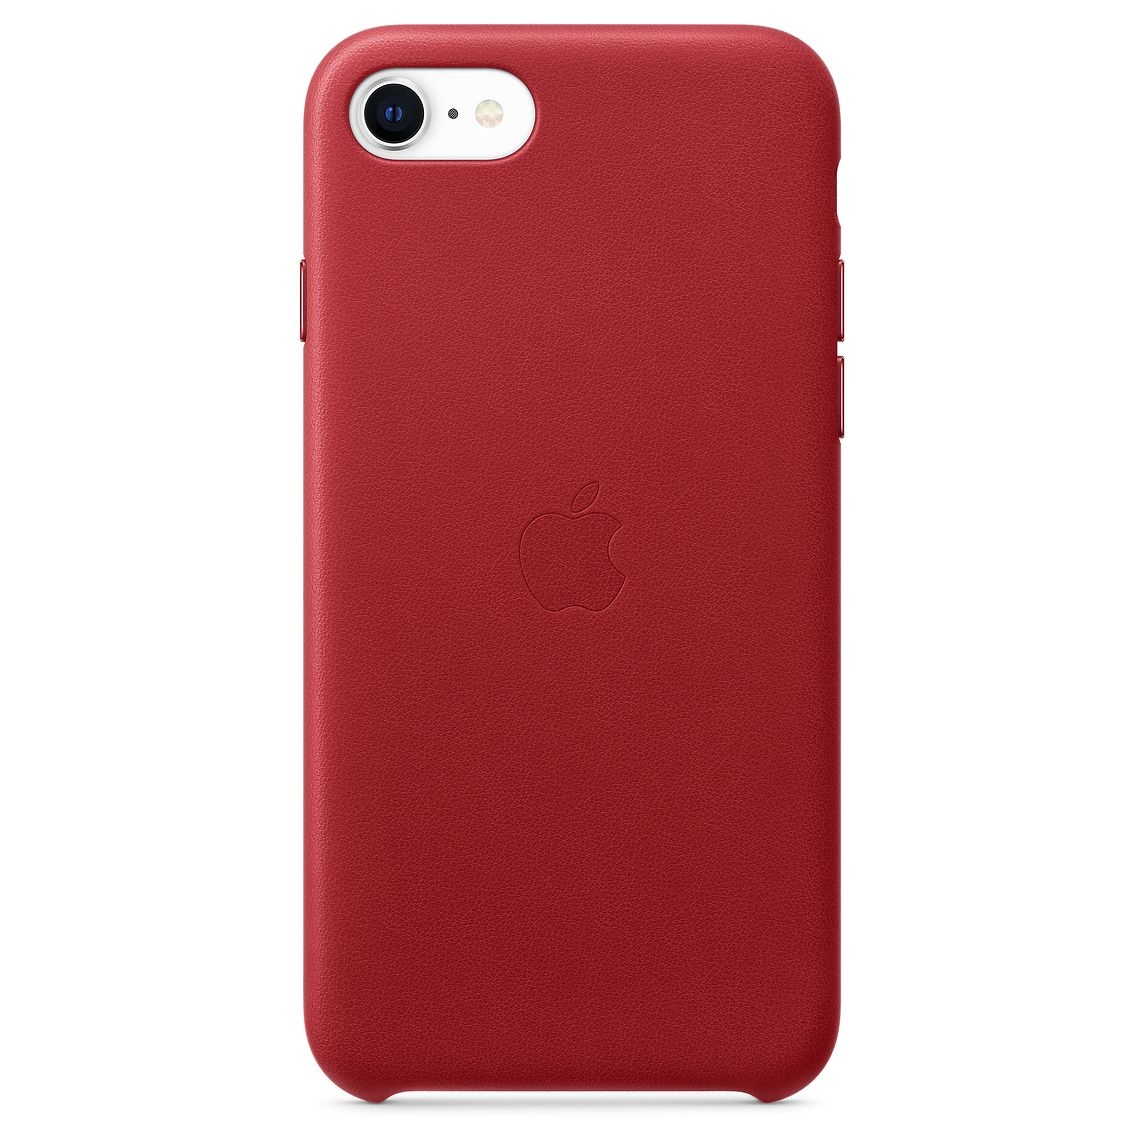 Apple iPhone SE Leather Case (PRODUCT)RED (2020)